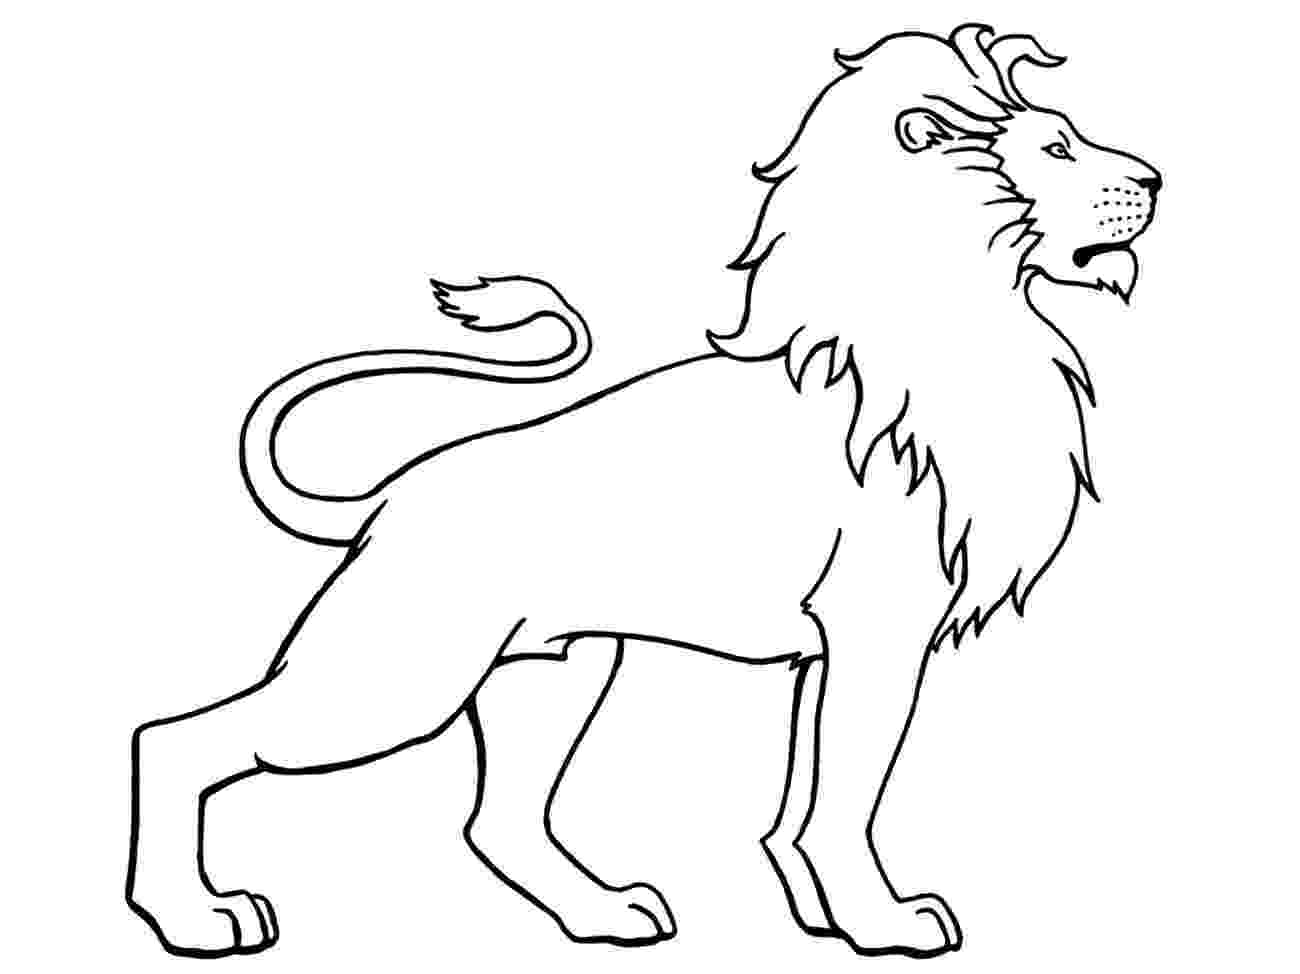 pictures of lions to color free printable lion coloring pages for kids cool2bkids to lions color pictures of